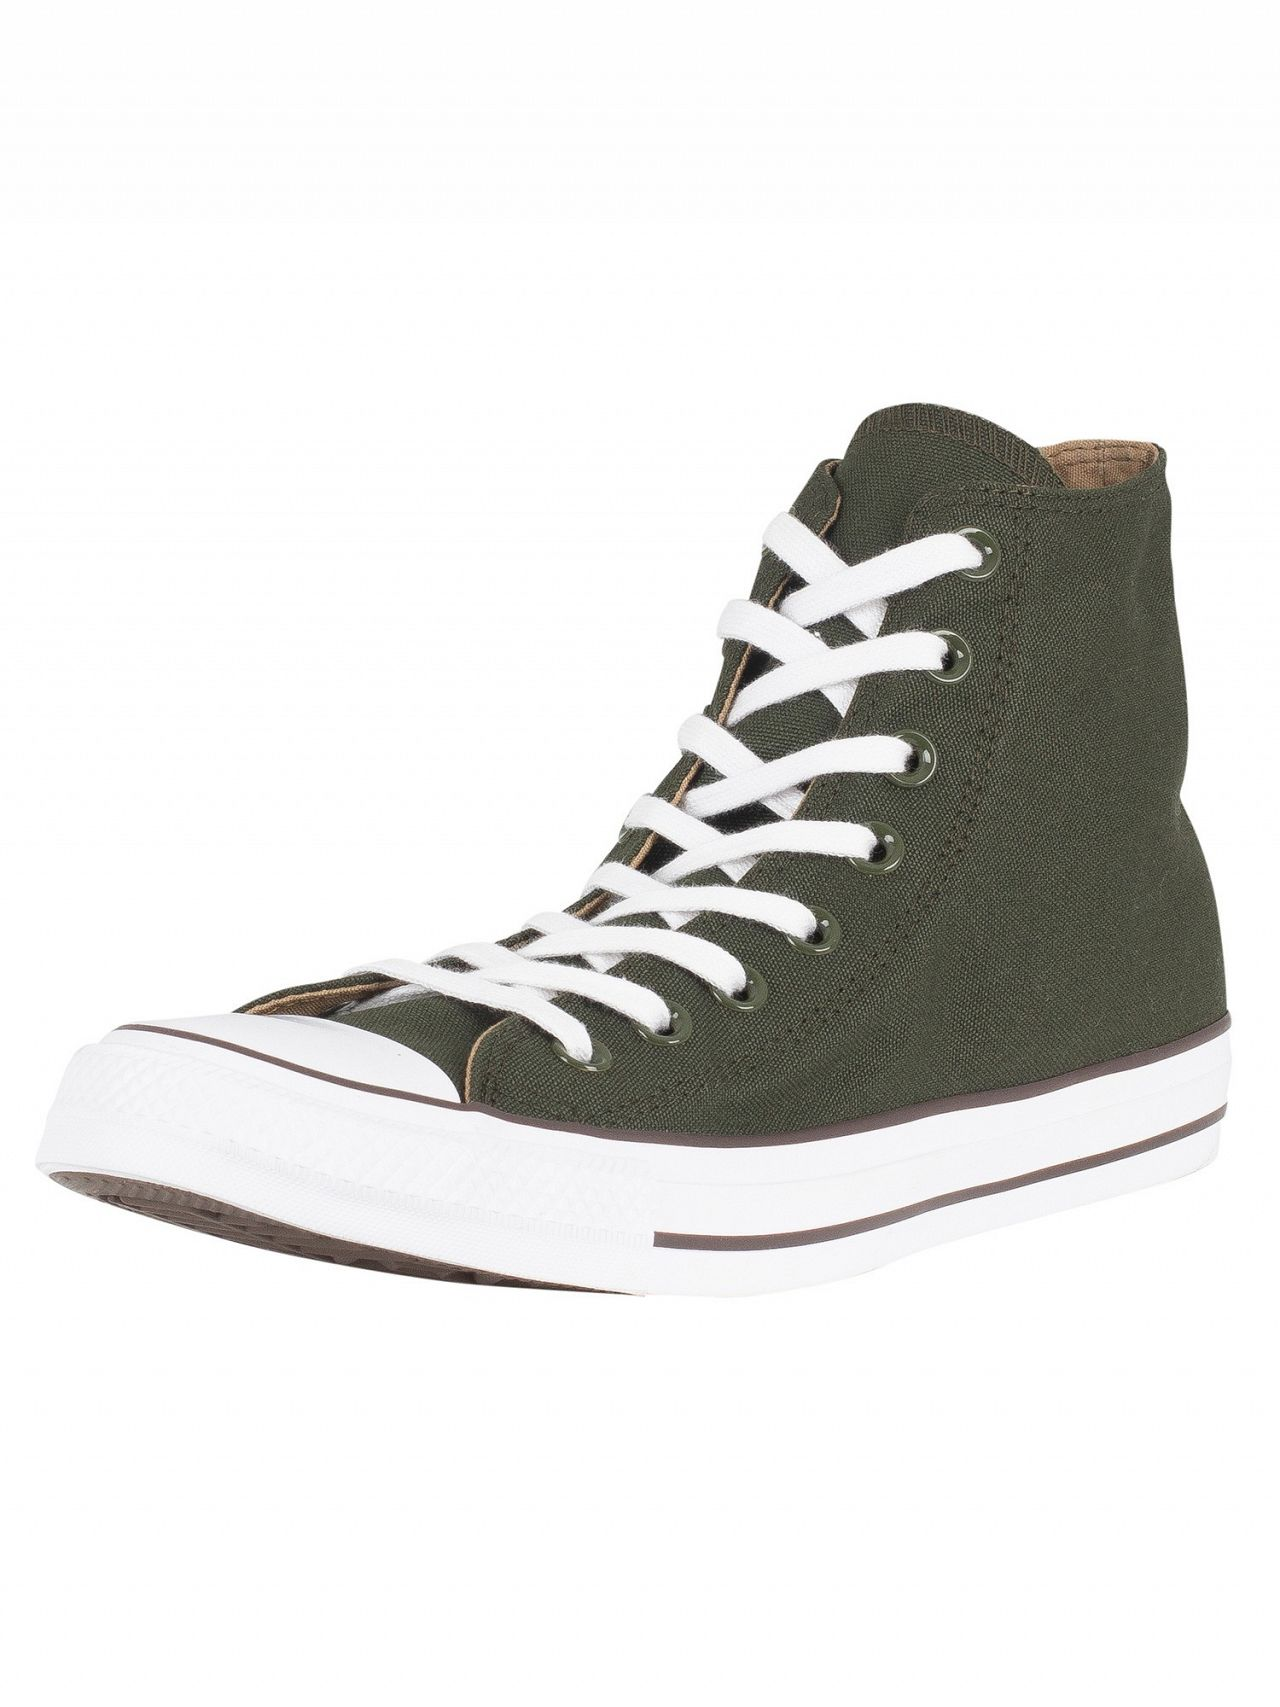 Converse Utility Green Teak White CT All Star Hi Trainers  a59181ab5